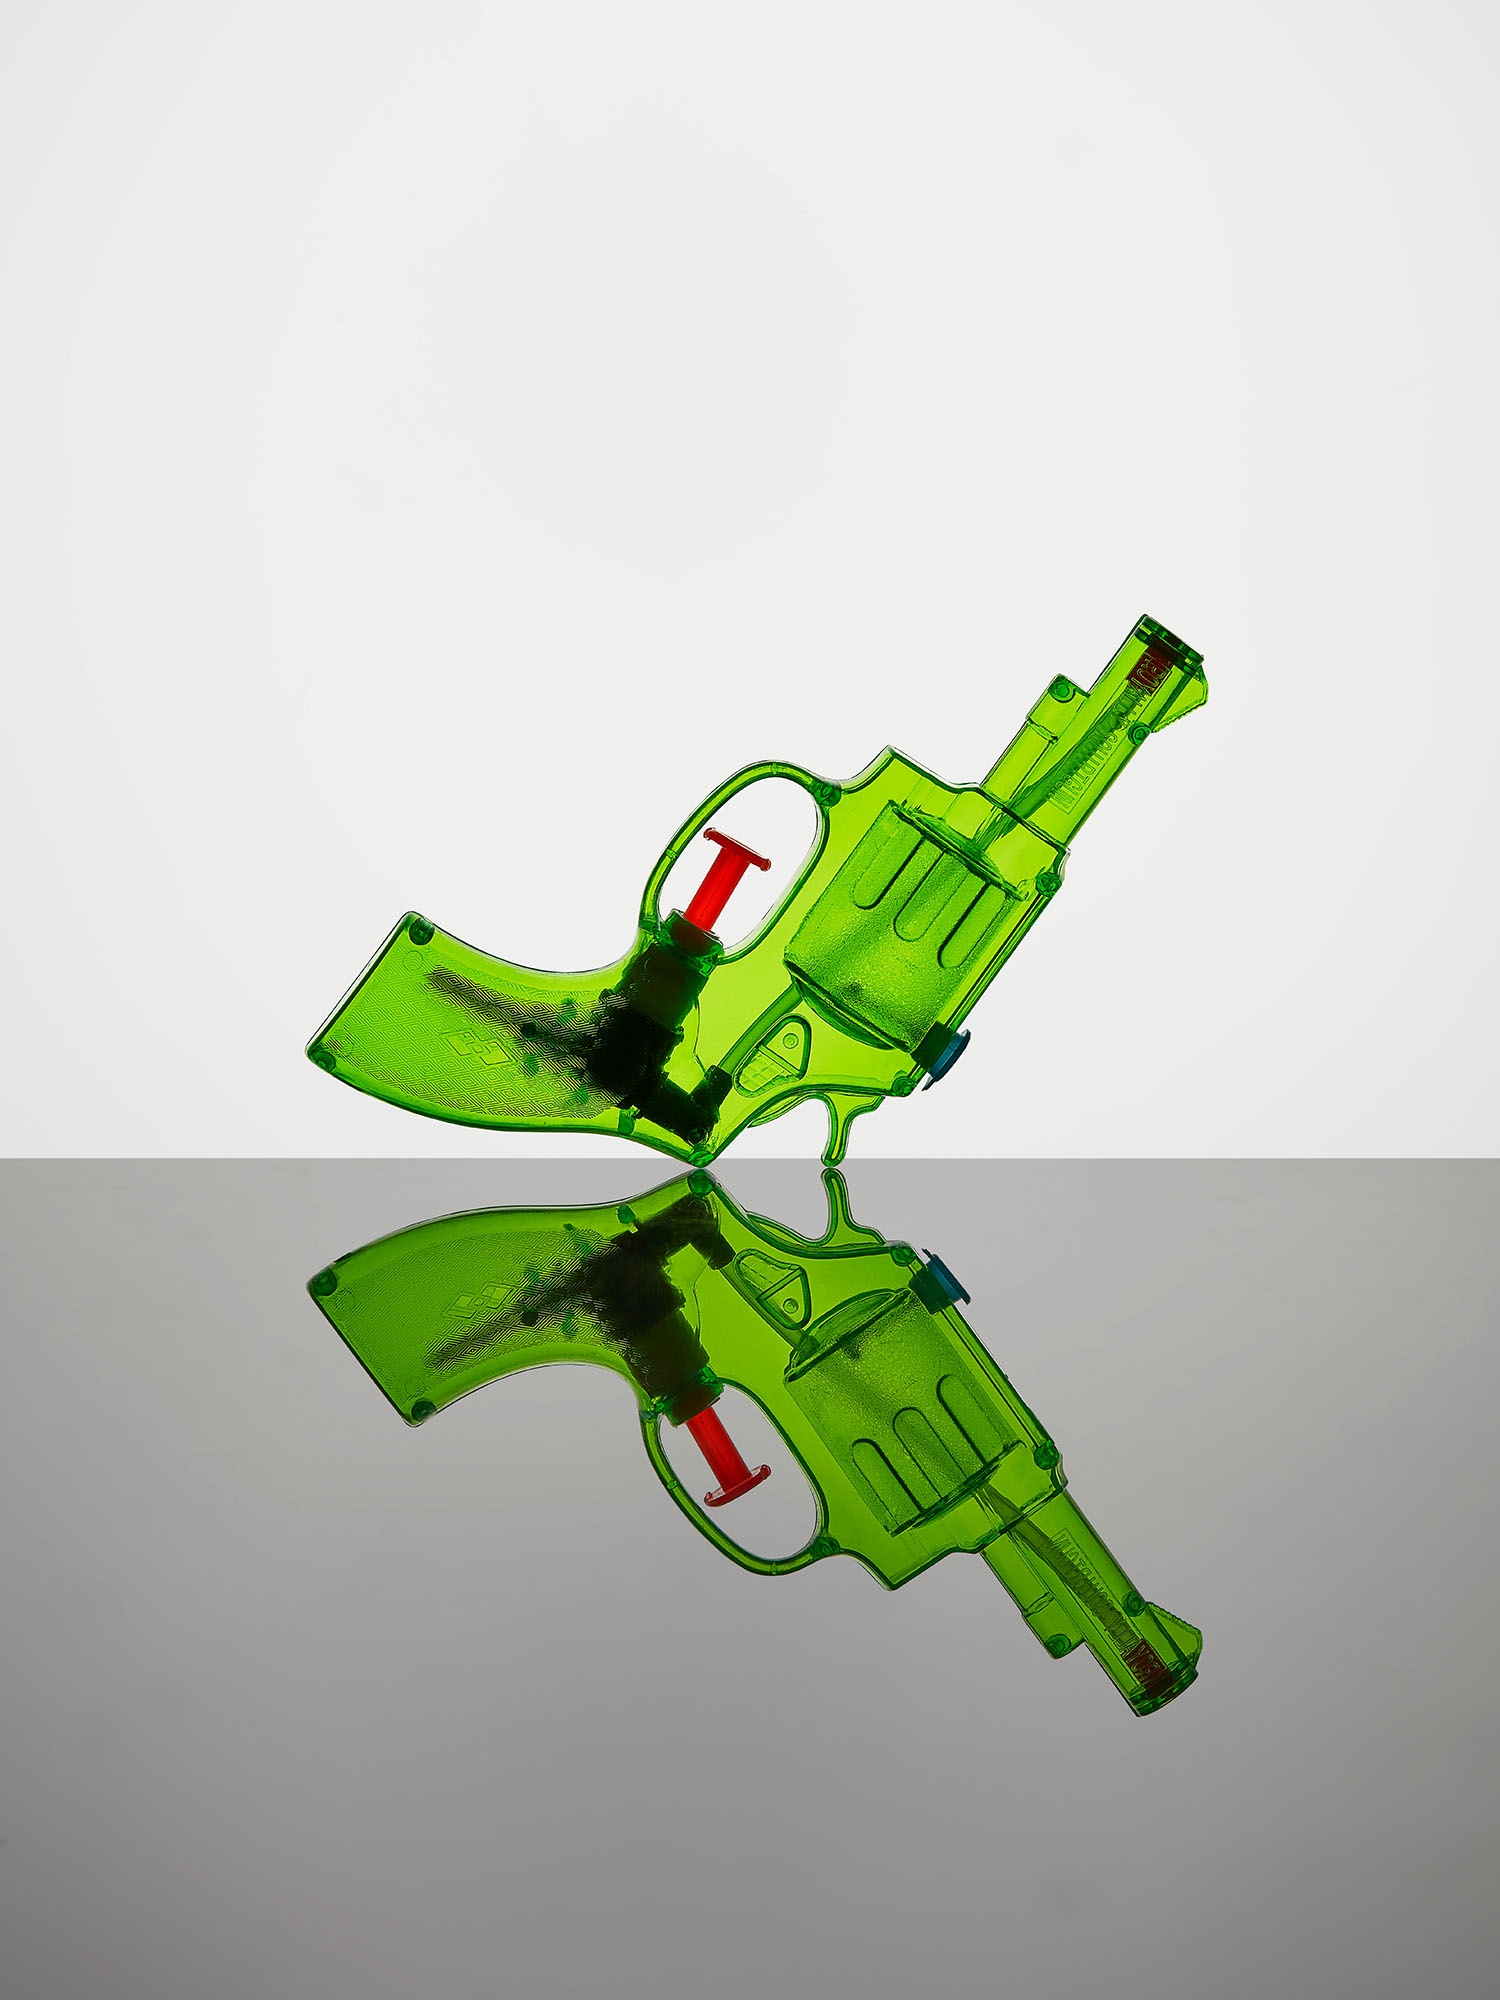 WaterPistols_Green.jpg